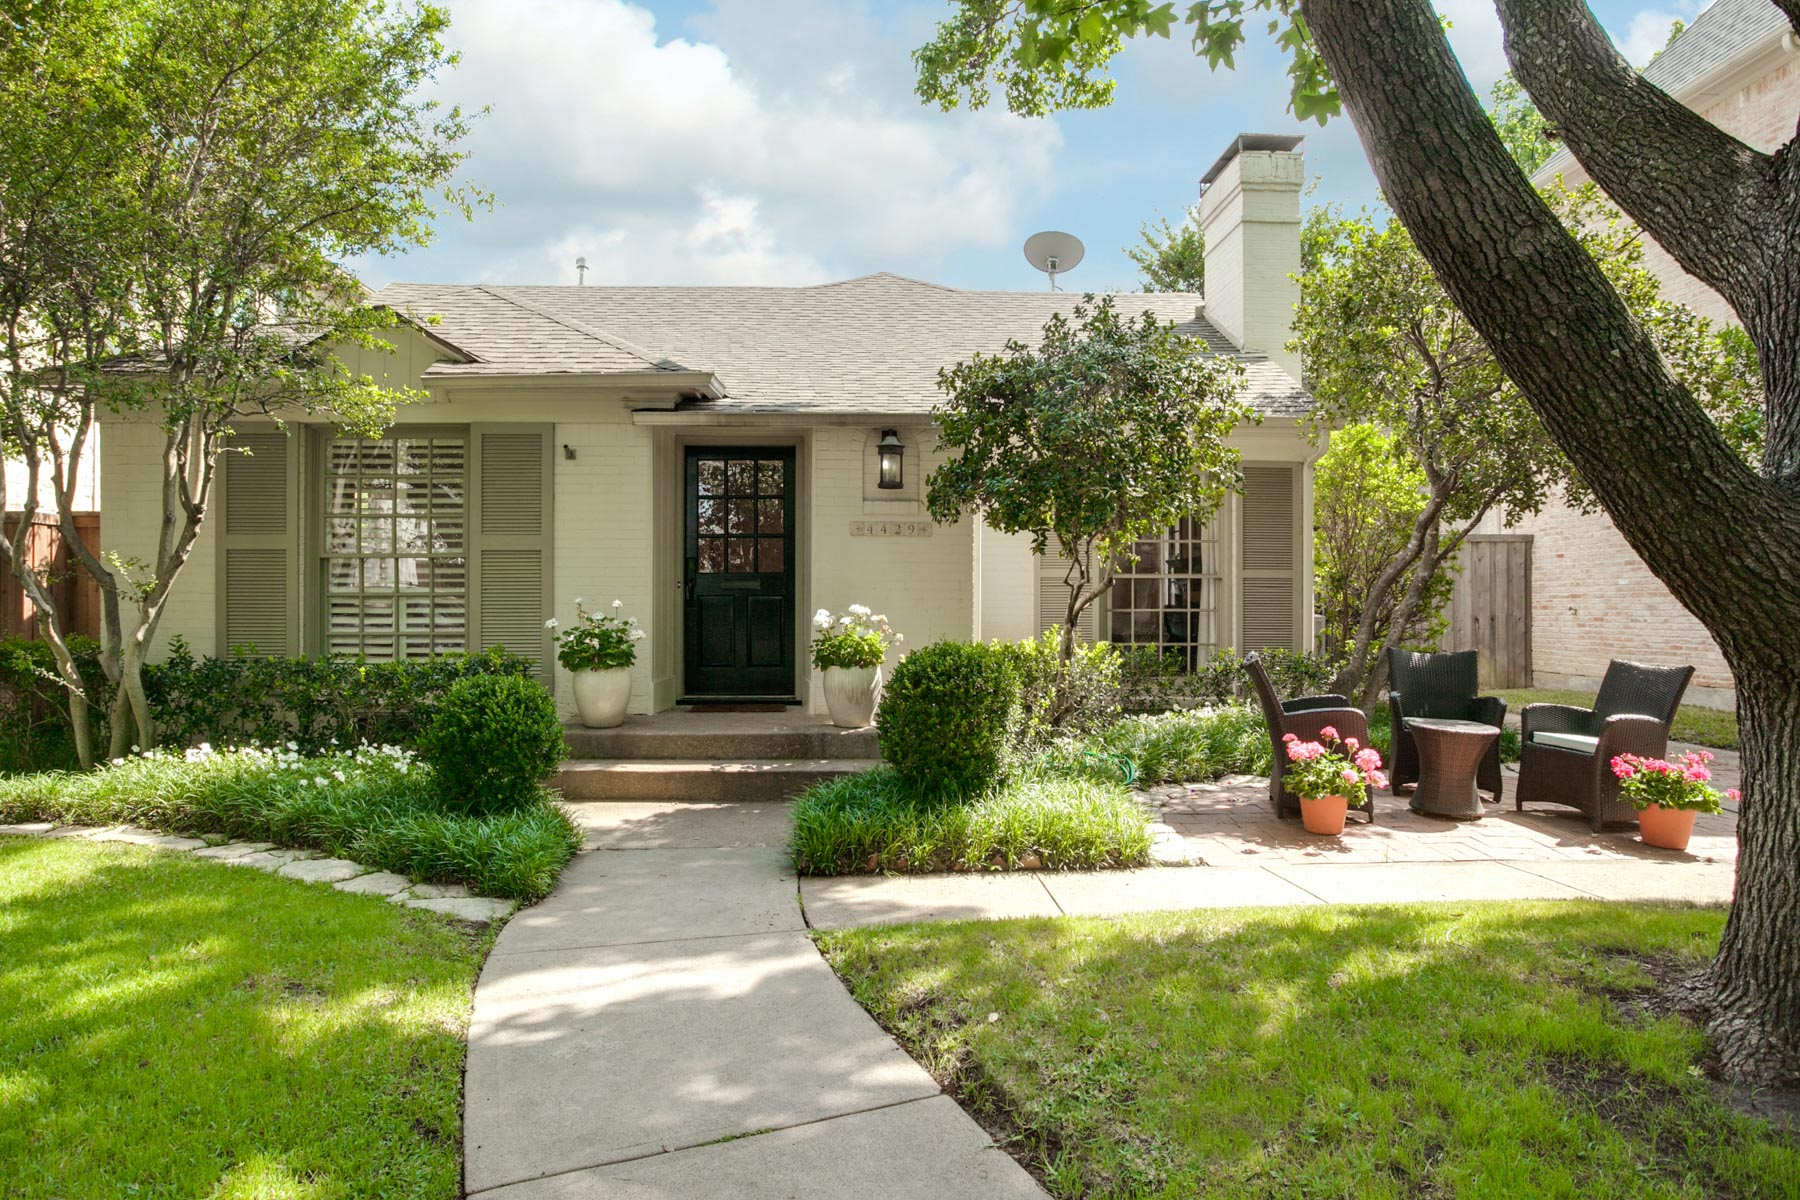 Maison unifamiliale pour l Vente à Highland Park Cottage 4429 Grassmere Ln Dallas, Texas, 75205 États-Unis